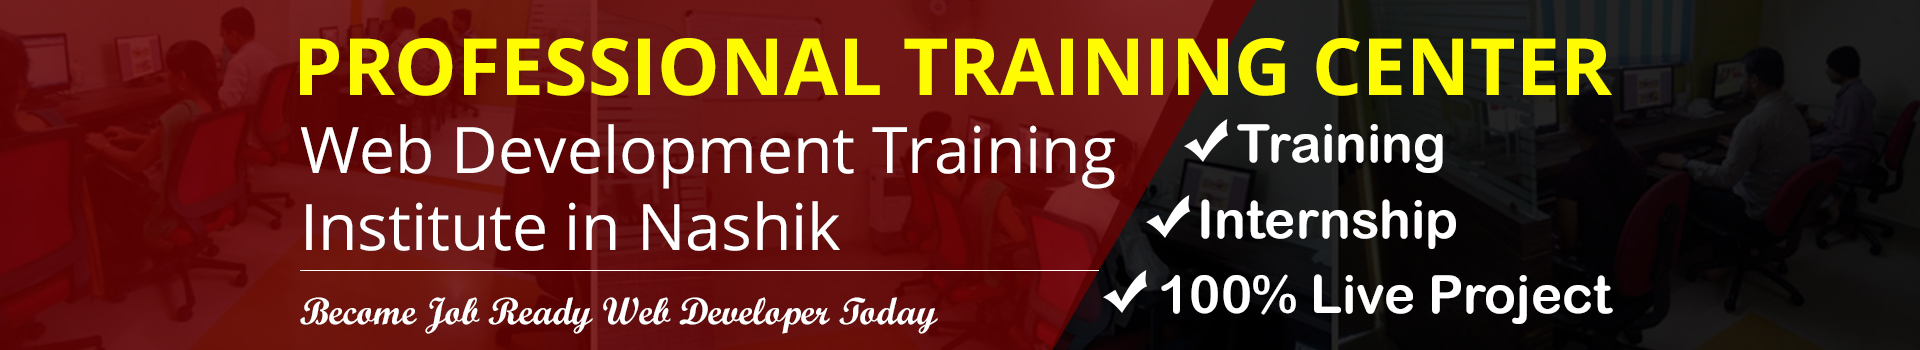 Web Development Training In Nashik With Live Project Internship